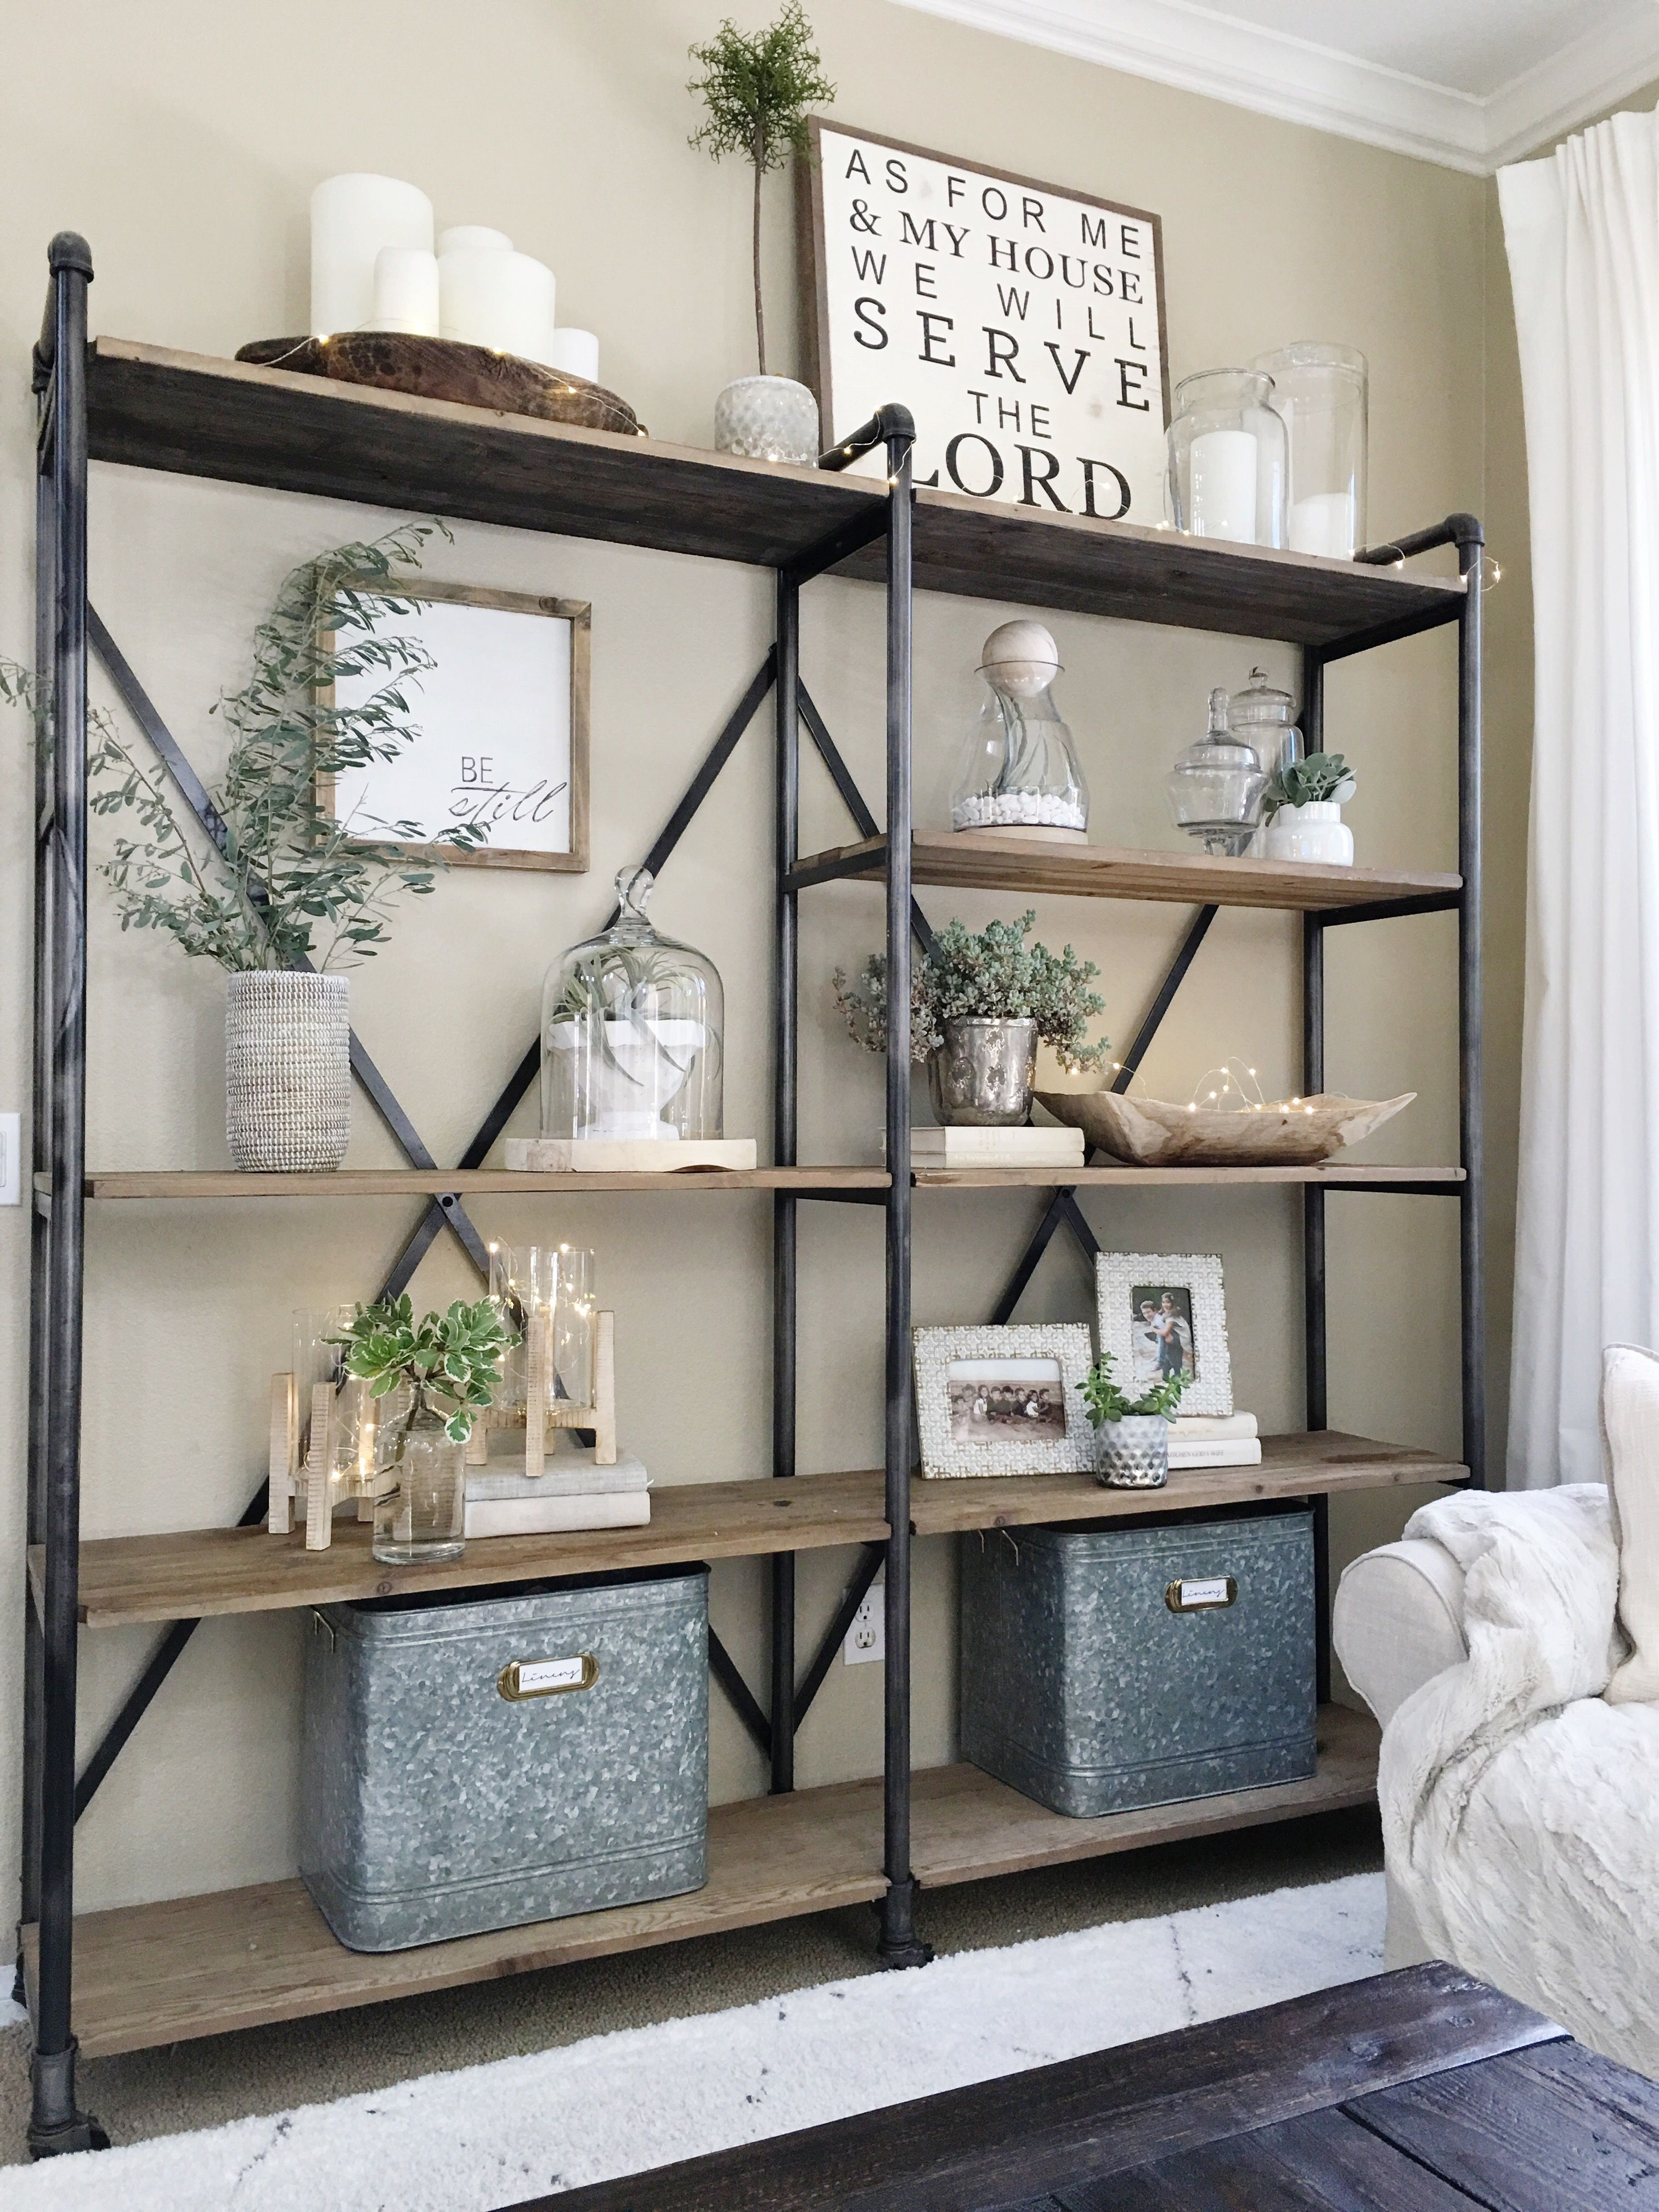 Shelves Living Room Furnishing A Tiny Simplified Home Decor Industrial More